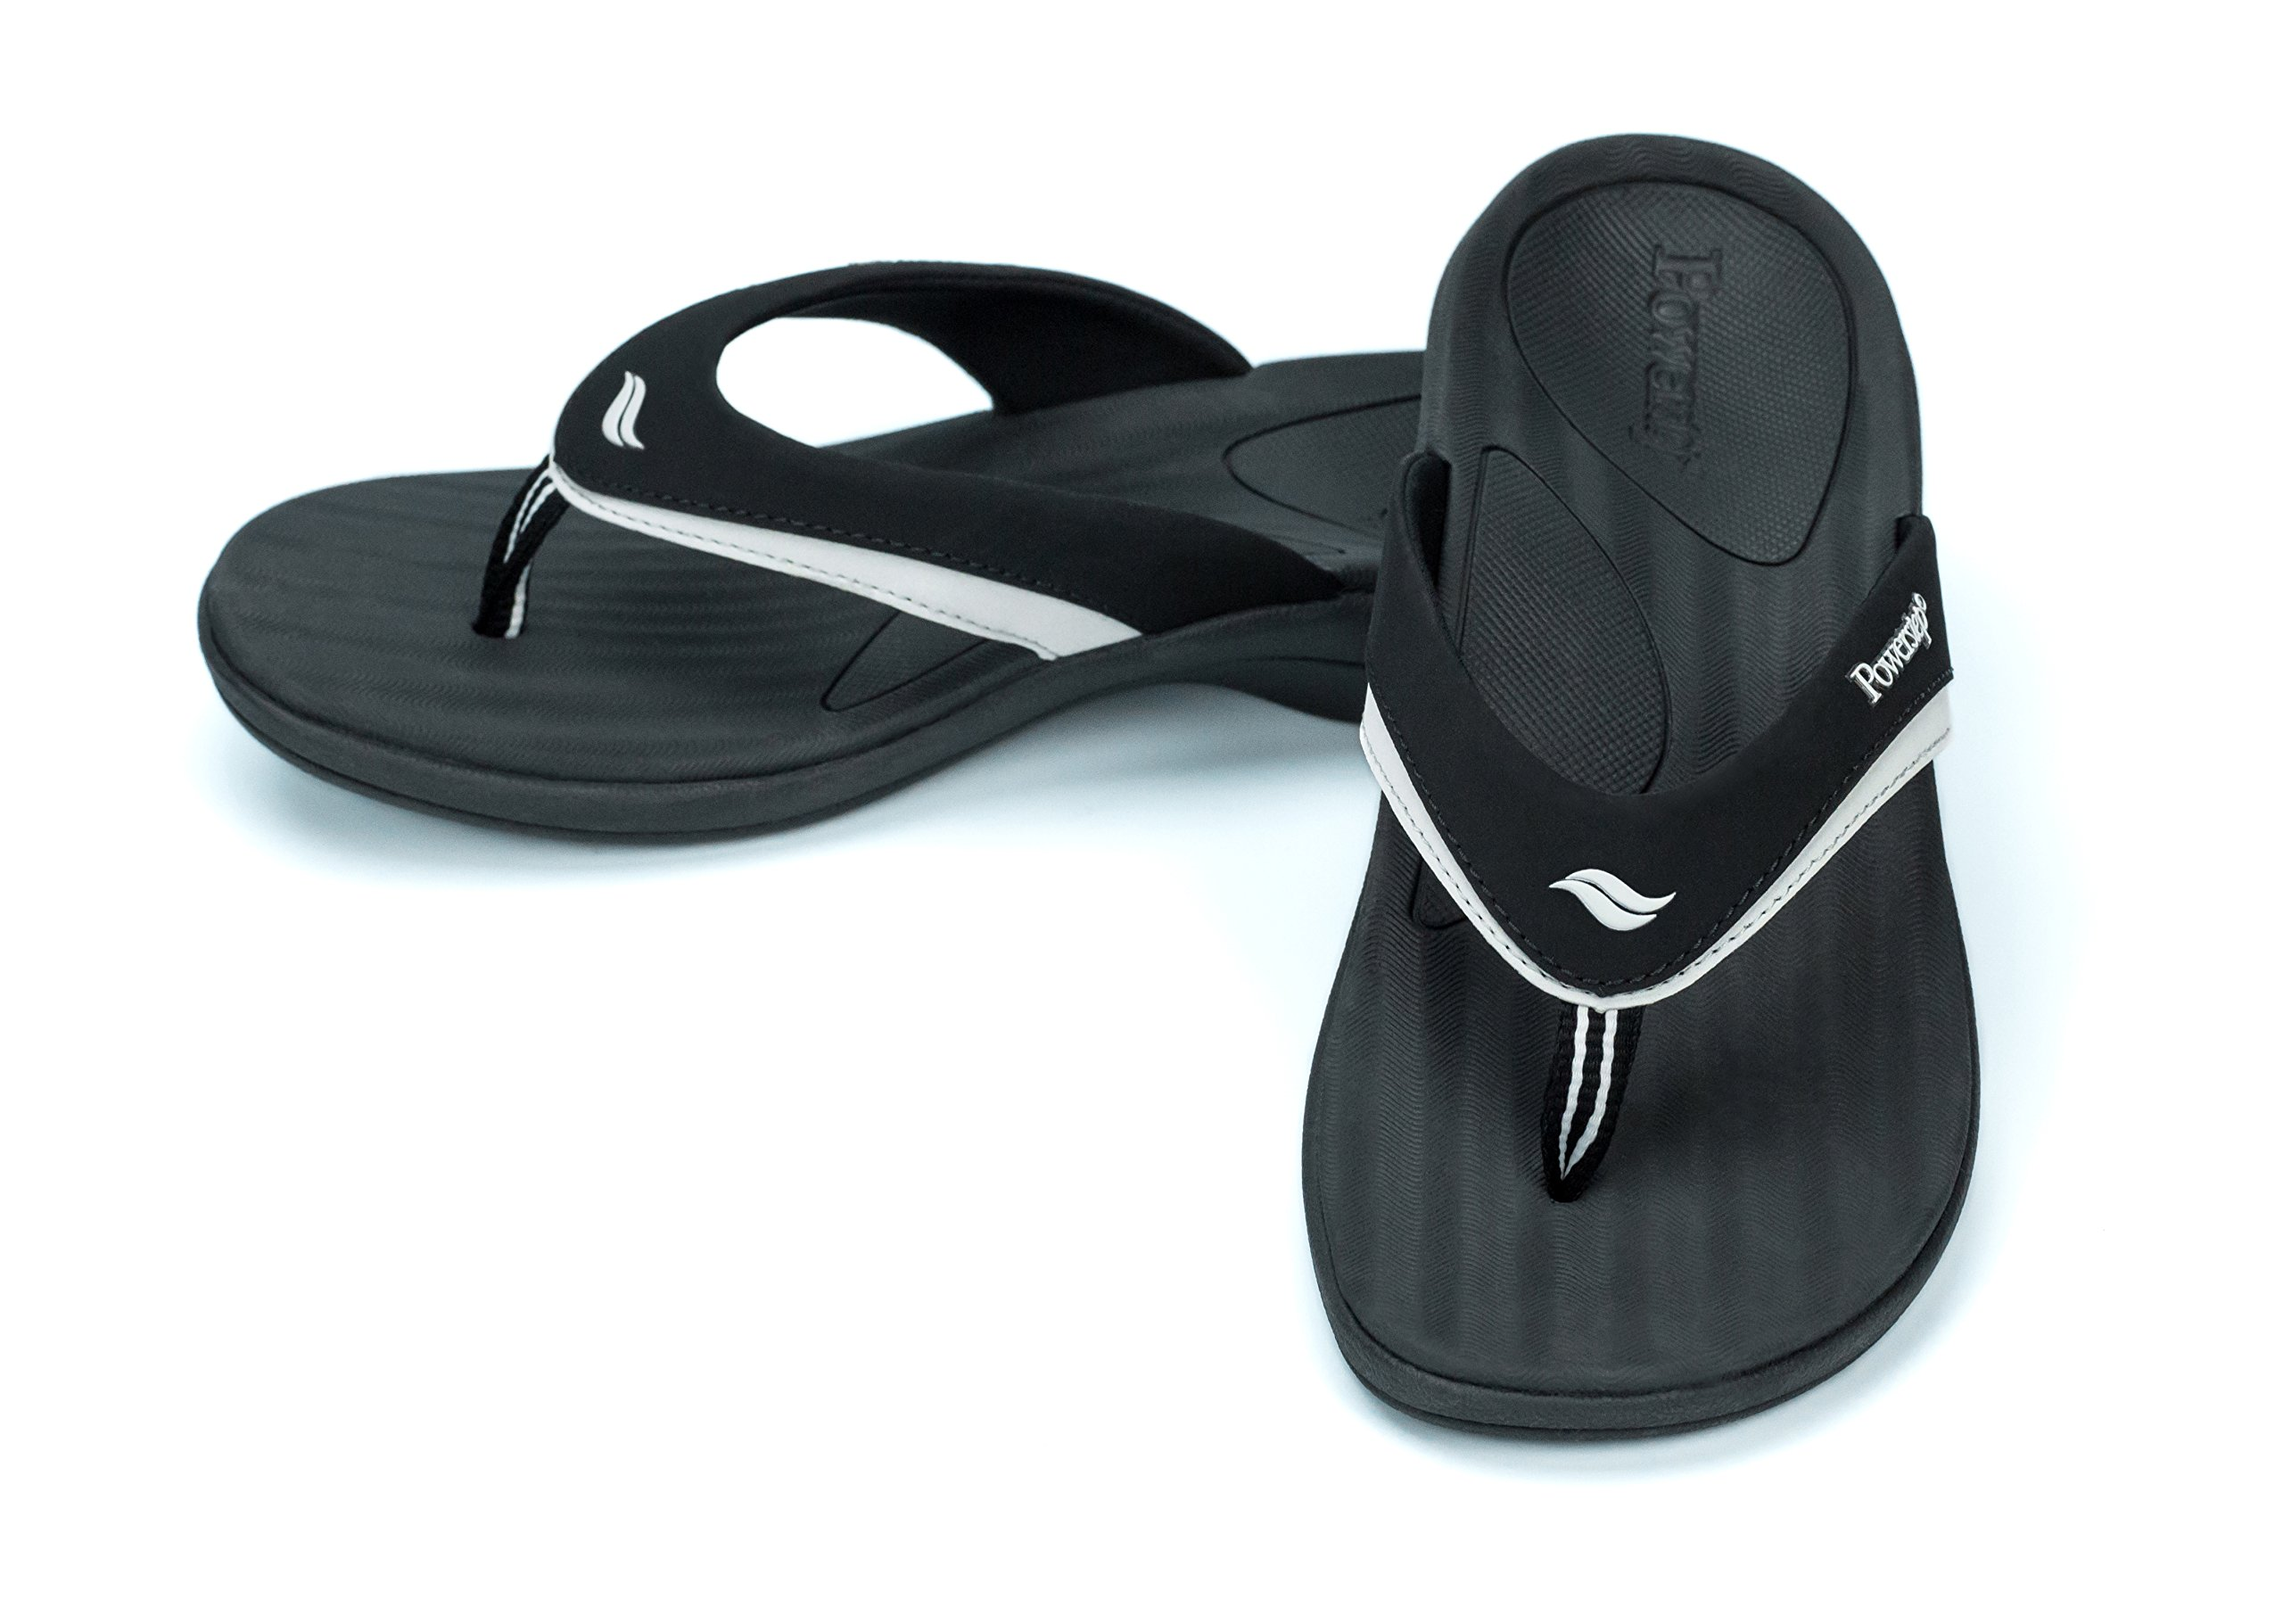 30b6cb657 Powerstep Women s Fusion Flip-Flop Sandals – Orthotic Sandal with Built-in  Arch Support